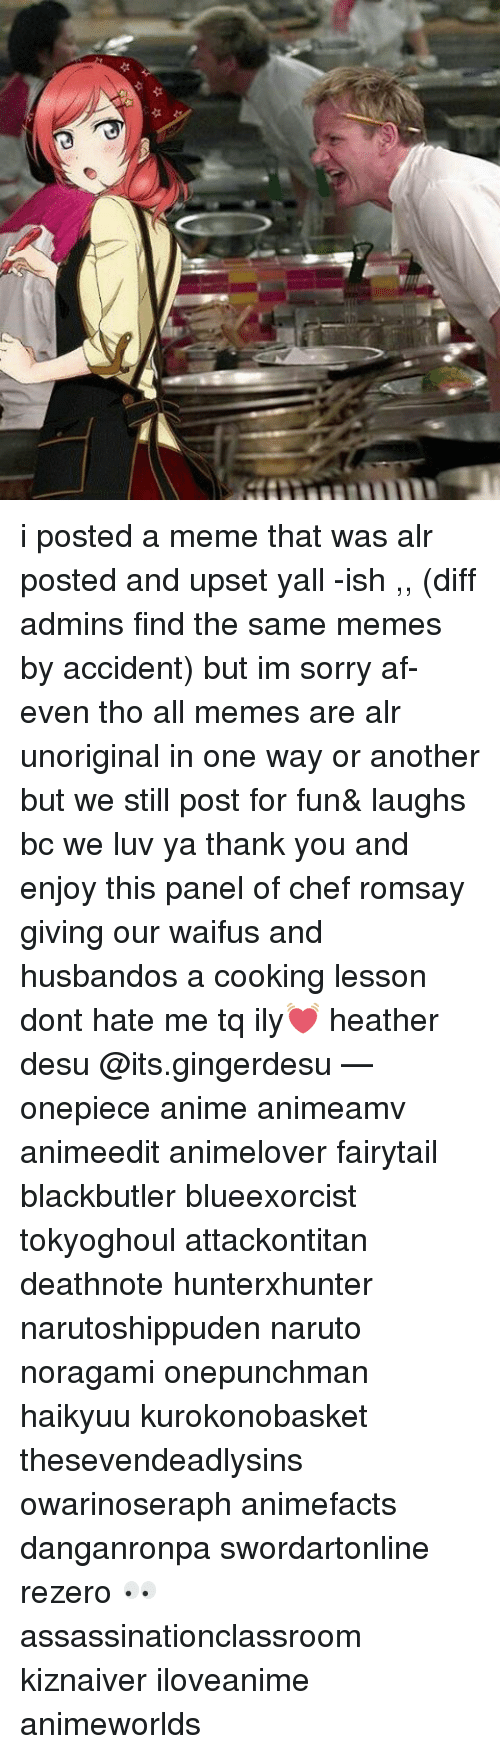 dont hate me: 44 i posted a meme that was alr posted and upset yall -ish ,, (diff admins find the same memes by accident) but im sorry af- even tho all memes are alr unoriginal in one way or another but we still post for fun& laughs bc we luv ya thank you and enjoy this panel of chef romsay giving our waifus and husbandos a cooking lesson dont hate me tq ily💓 heather desu @its.gingerdesu — onepiece anime animeamv animeedit animelover fairytail blackbutler blueexorcist tokyoghoul attackontitan deathnote hunterxhunter narutoshippuden naruto noragami onepunchman haikyuu kurokonobasket thesevendeadlysins owarinoseraph animefacts danganronpa swordartonline rezero 👀 assassinationclassroom kiznaiver iloveanime animeworlds